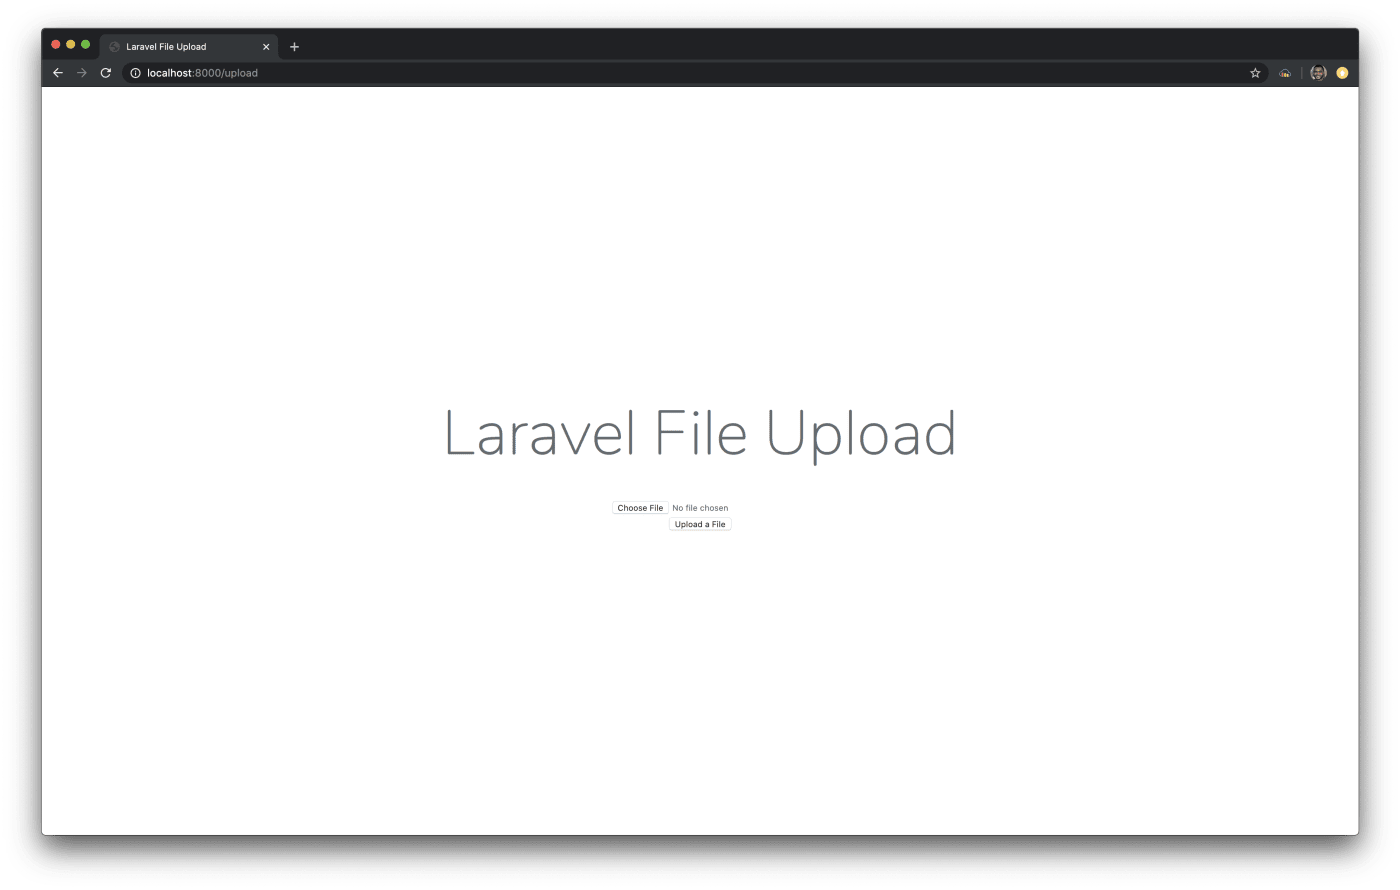 laravel file upload